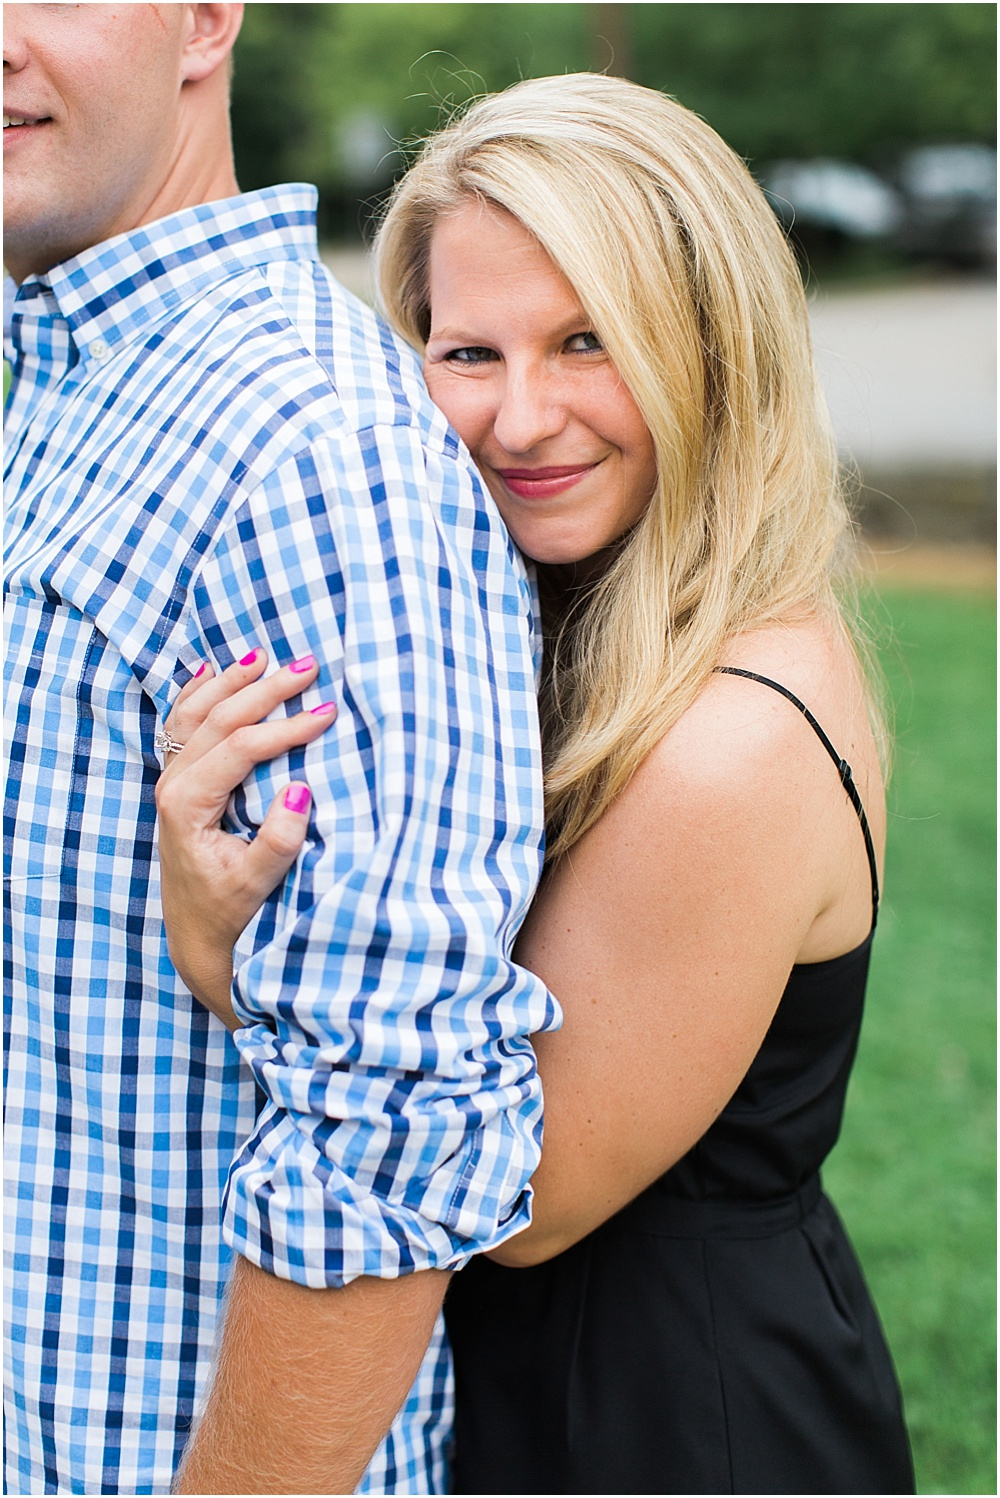 Ellicott_City_Engagement_Session_Baltimore_Maryland_Wedding_Photographer_0006